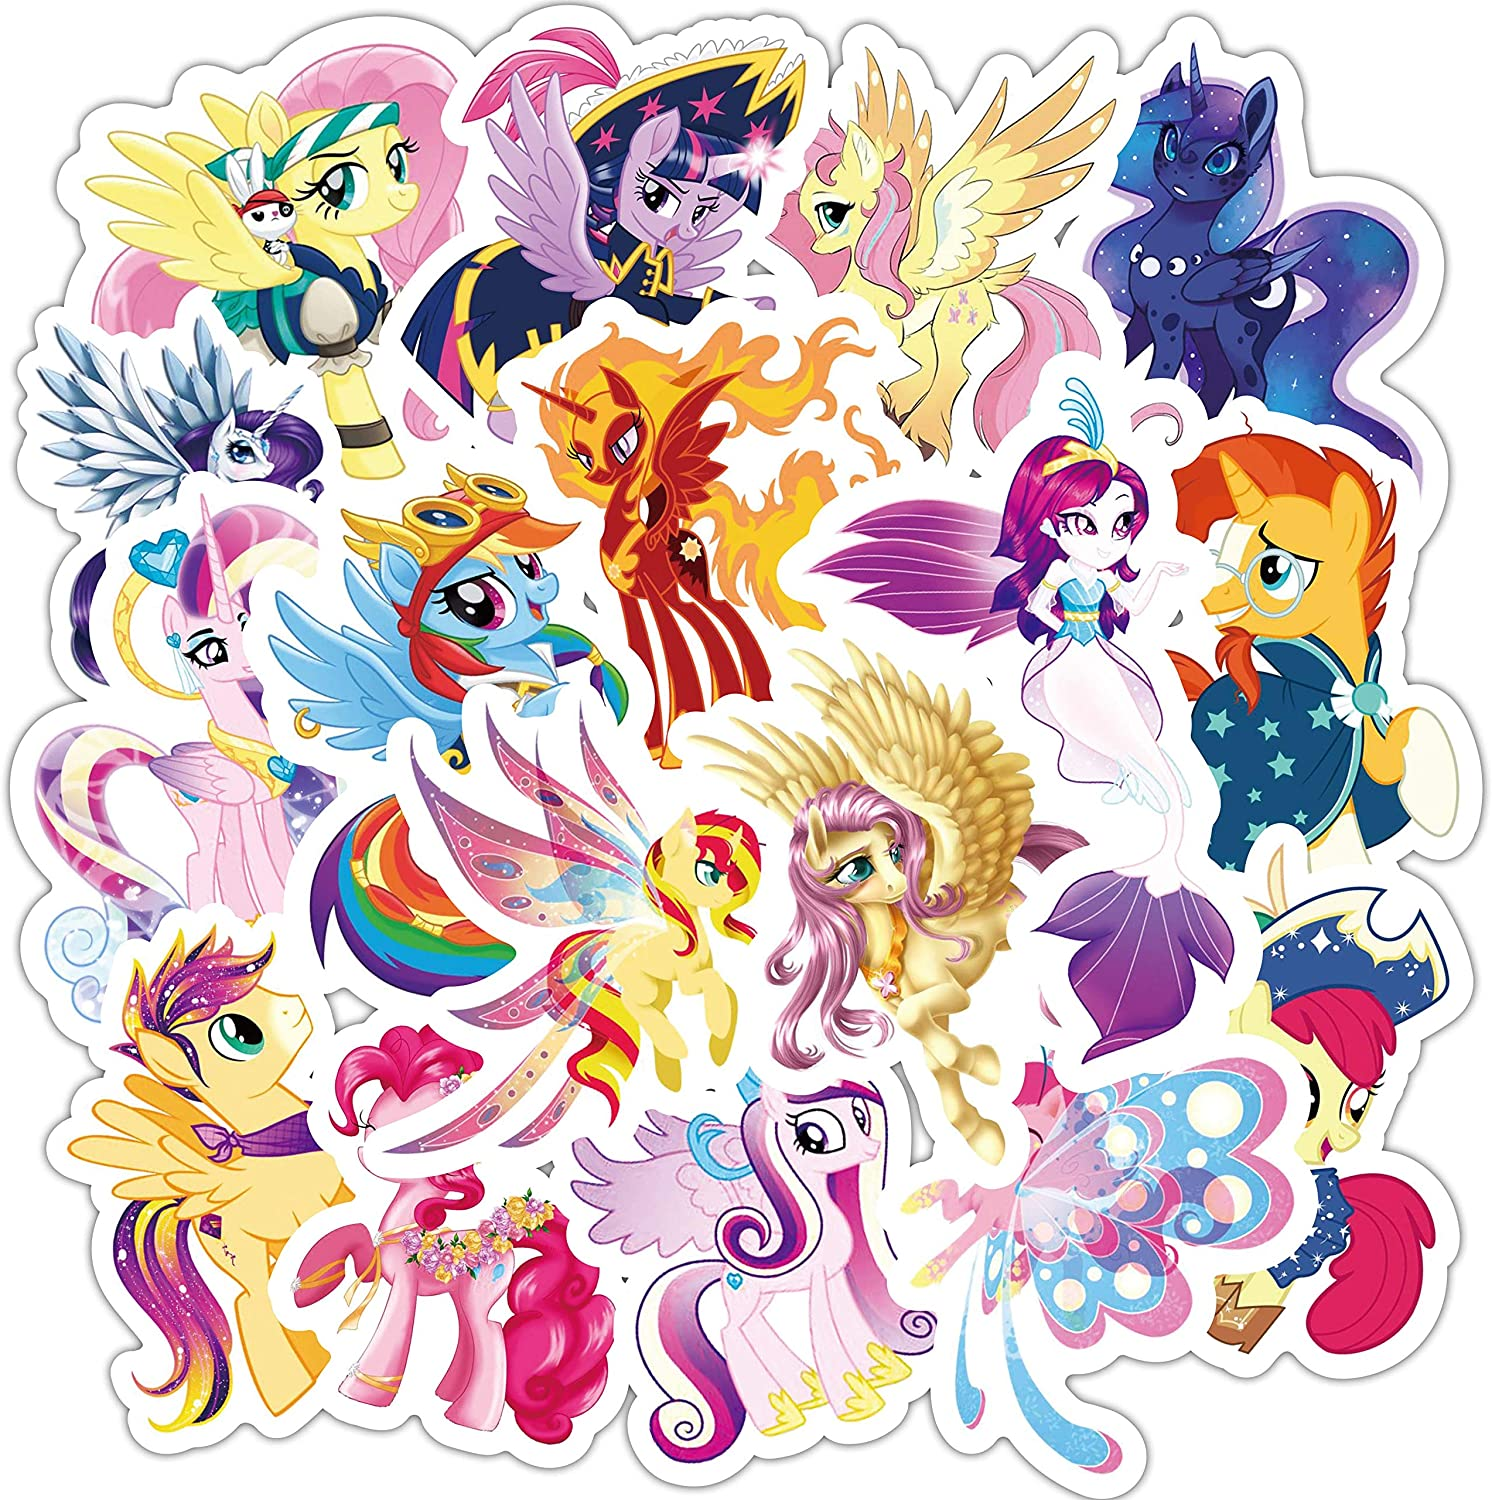 My Little Pony Stickers for Kids,62pcs Magic Cartoon Unicorn Stickers for Girls,Graffiti Waterproof Decals for Hydro flasks Water Bottles Bikes Luggage Skateboard Bumper (Little Pony)